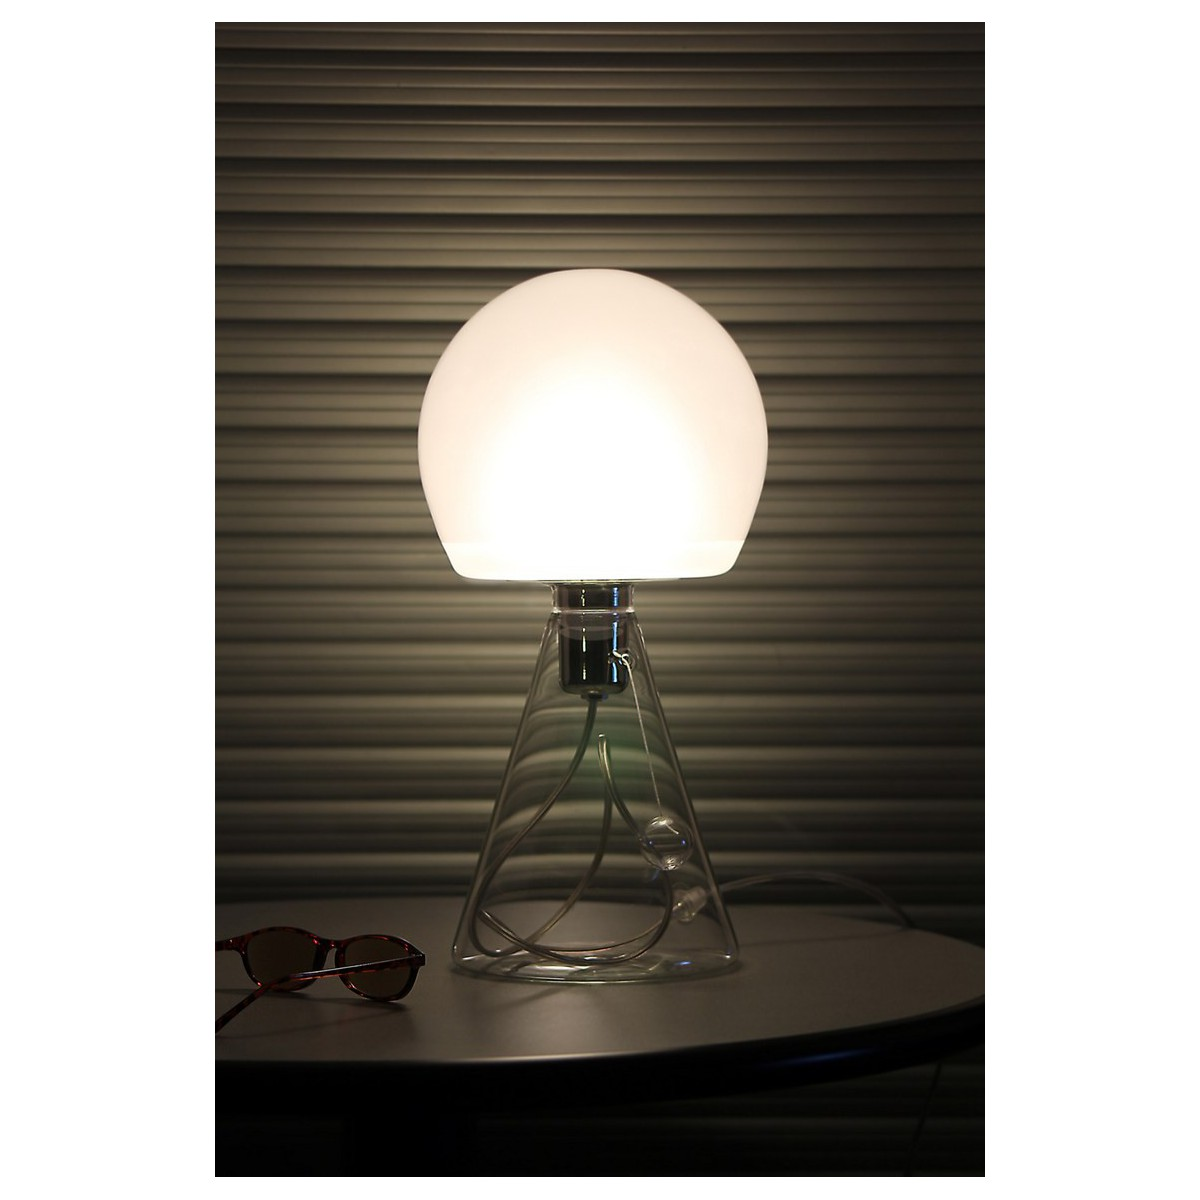 Petite lampe d 39 appoint au design pur et sobre sign e for But lampe a poser